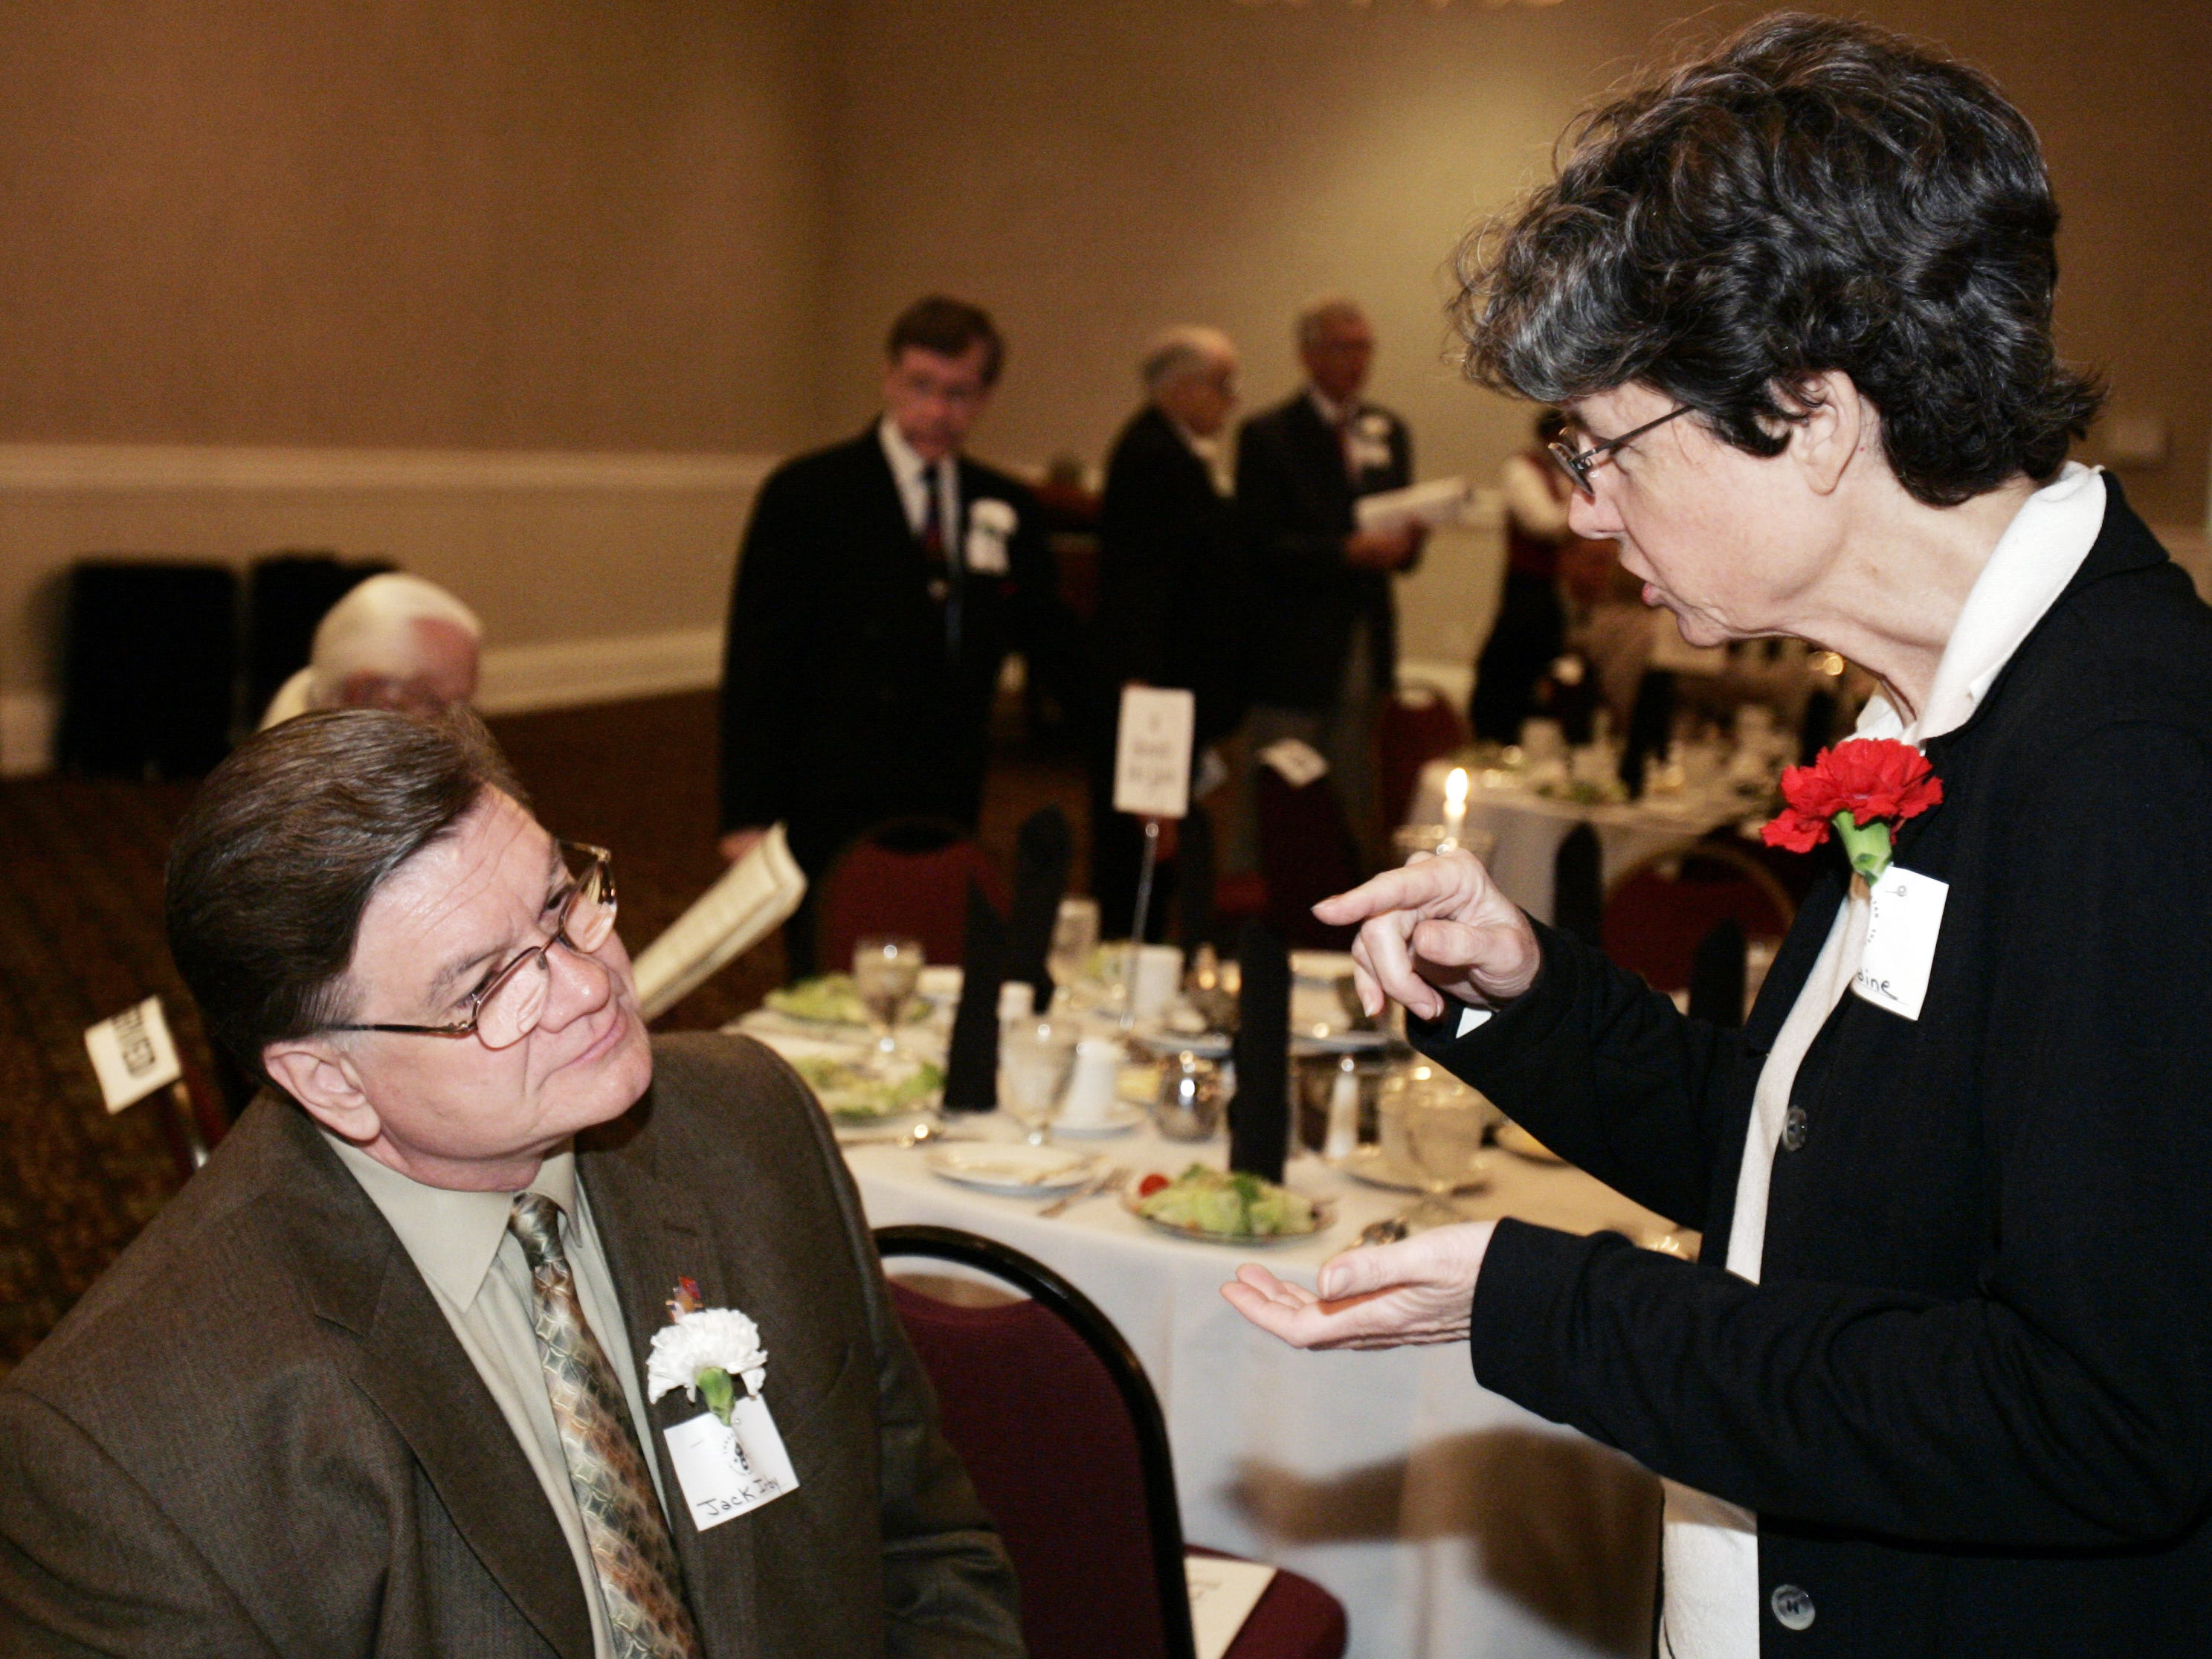 Tennessean reporter Anne Paine, right, talks with three-star letter writer and Tennessean.com blogger Jack Irby at the Three Star Forum Banquet on May 4, 2007.